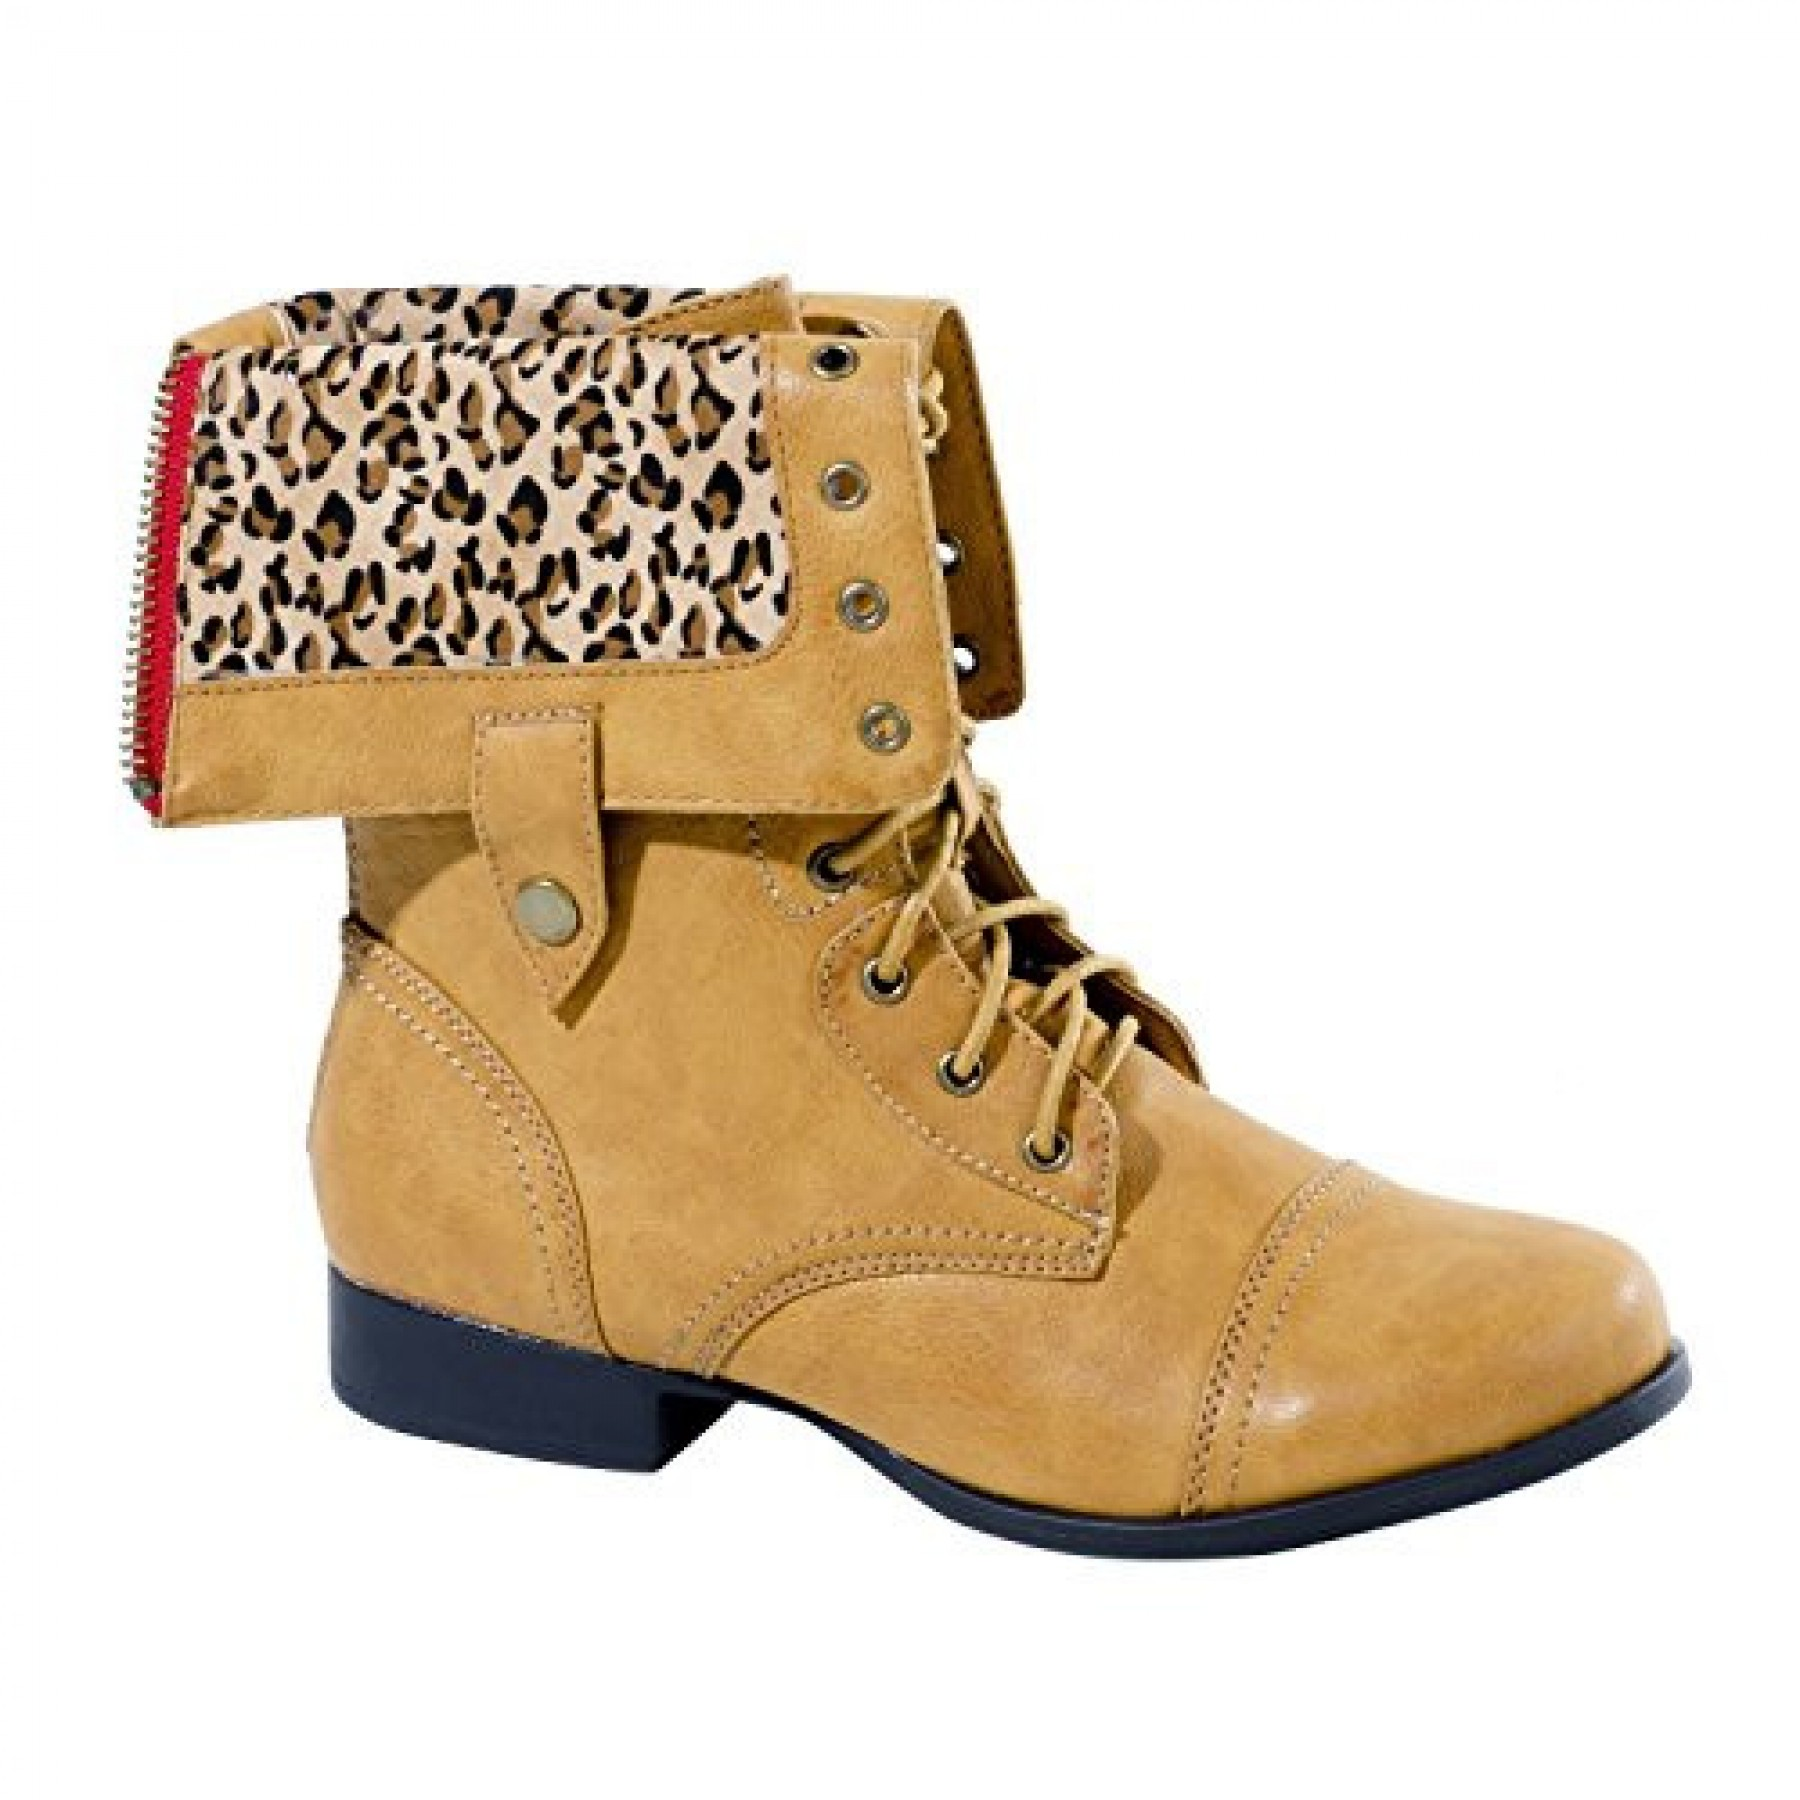 Women's Cognac Knight Manmade Combat Boot with Animal Print Fold-Down Liner